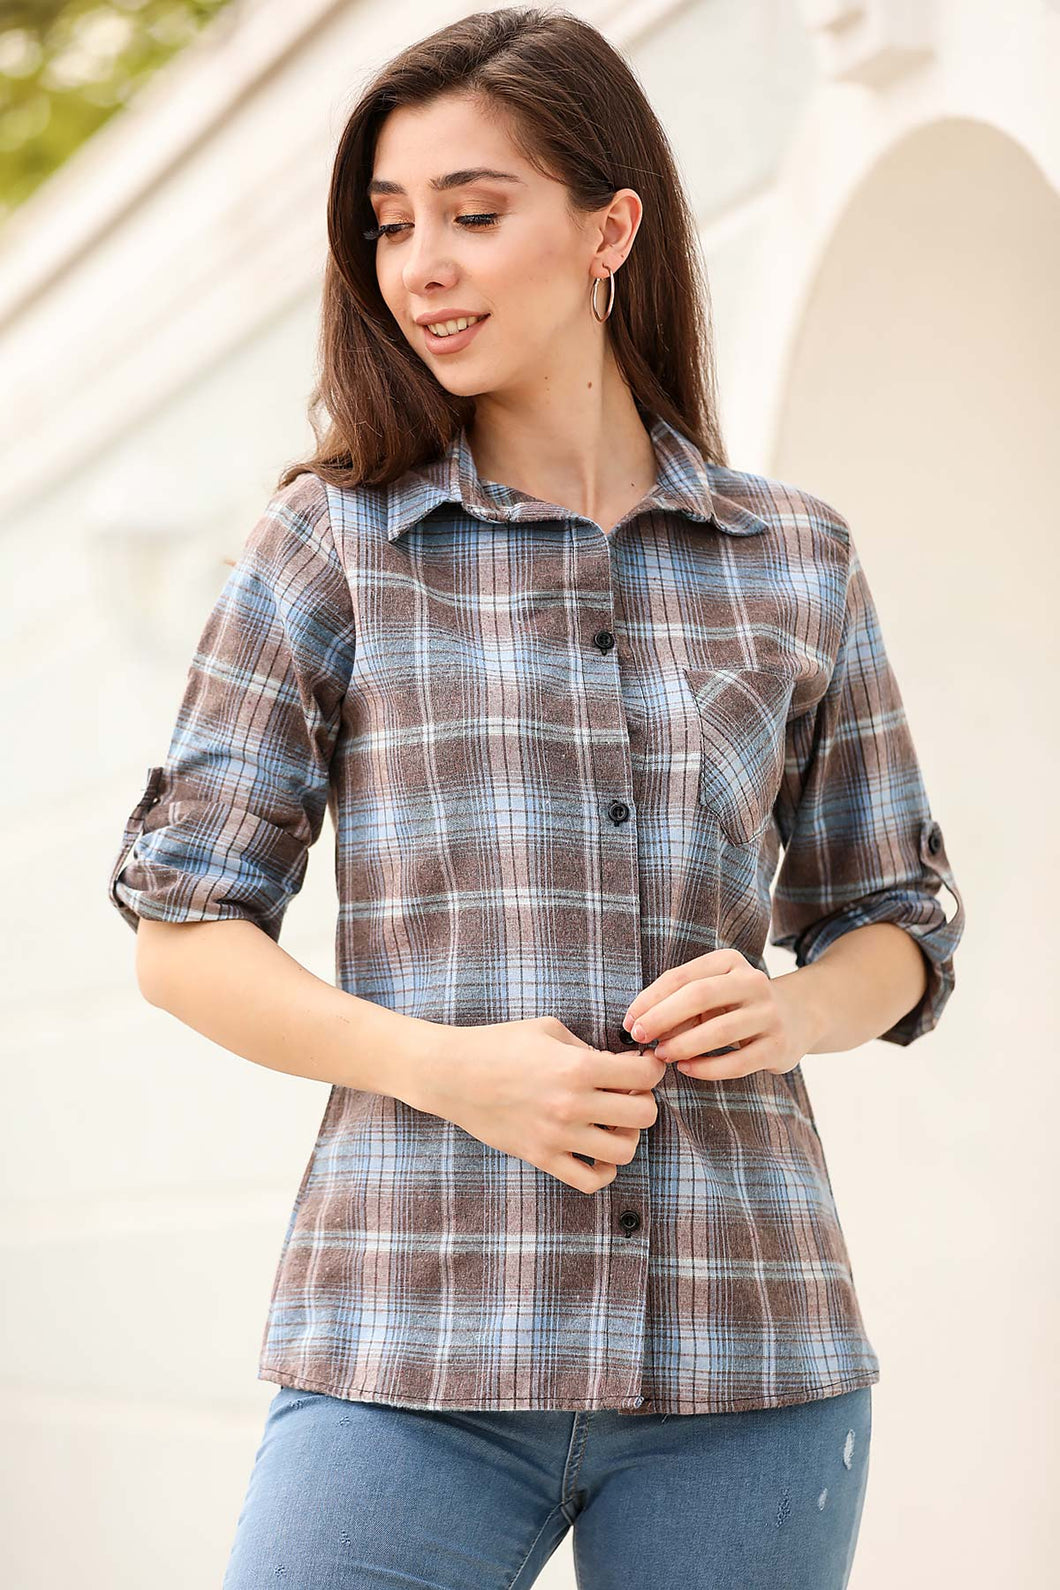 Women's Roll-up Sleeves Plaid Shirt